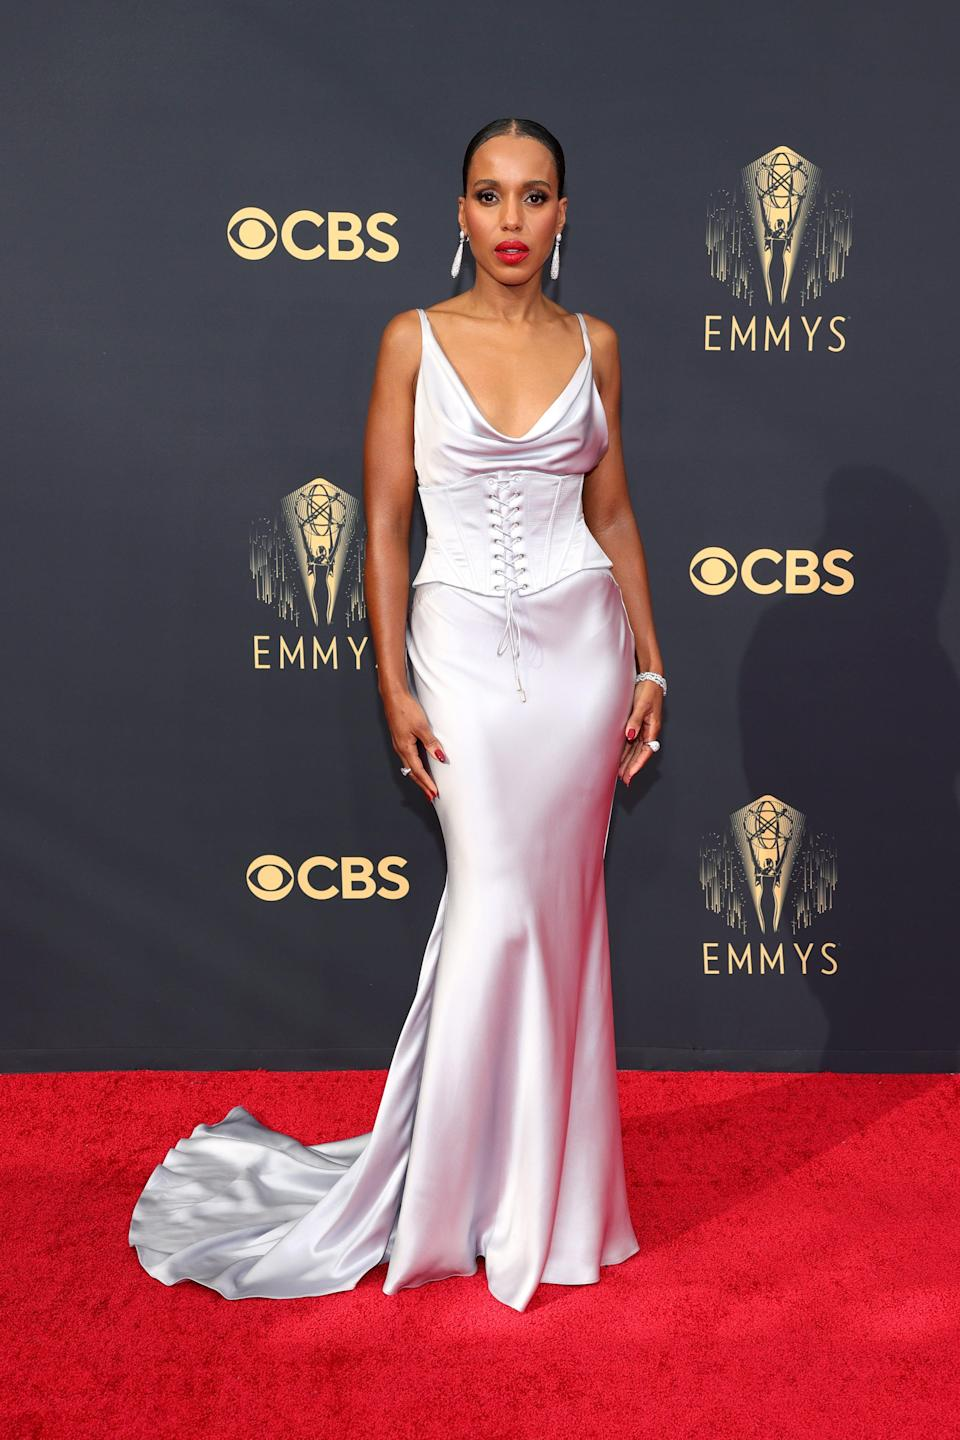 Kerry Washington attends the 2021 Emmys.